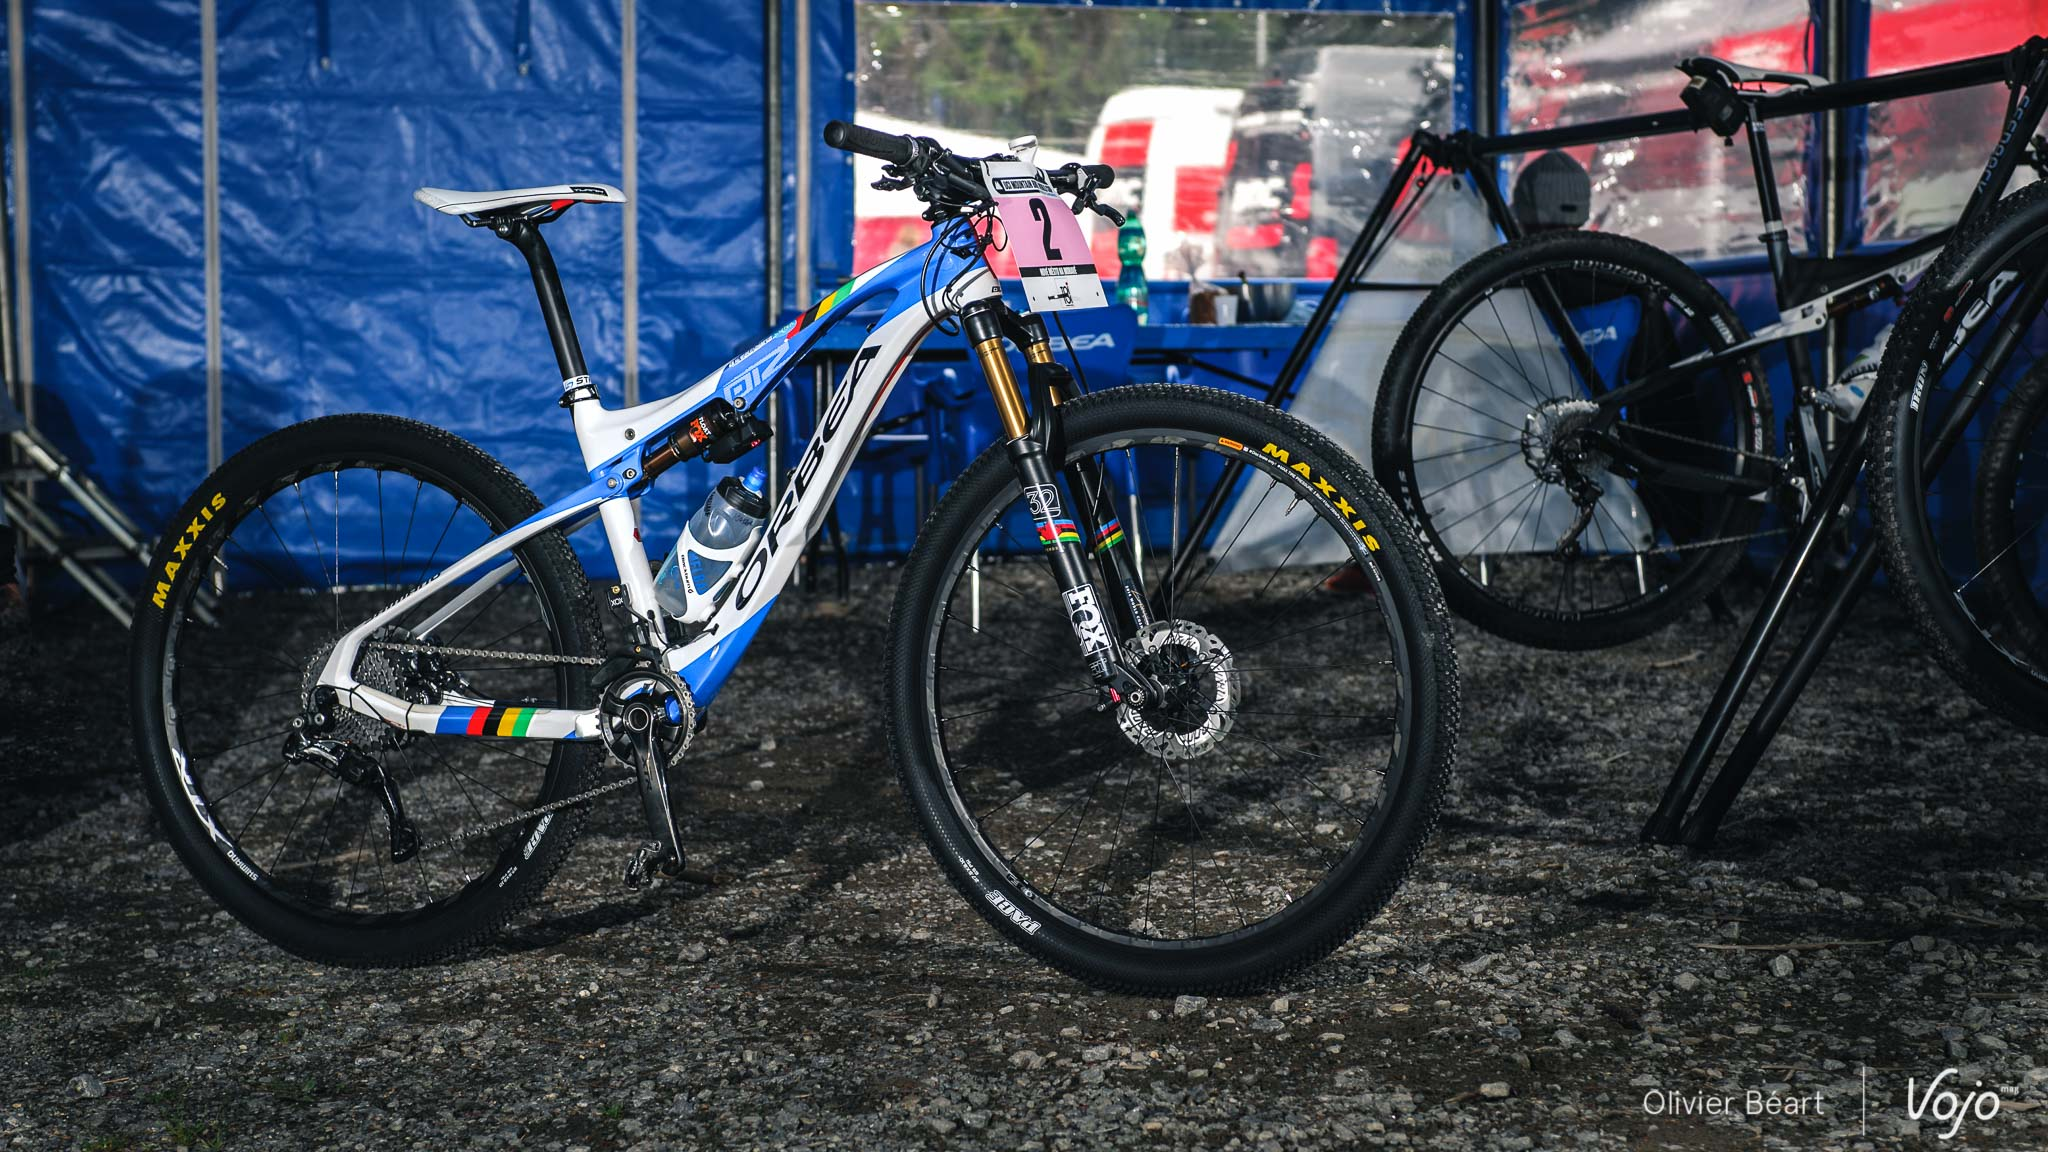 World_Cup_MTB_Pro_Bike_Check_Catharine_Pendrel°Orbea_Oiz_Copyright_OBeart_VojoMag-1